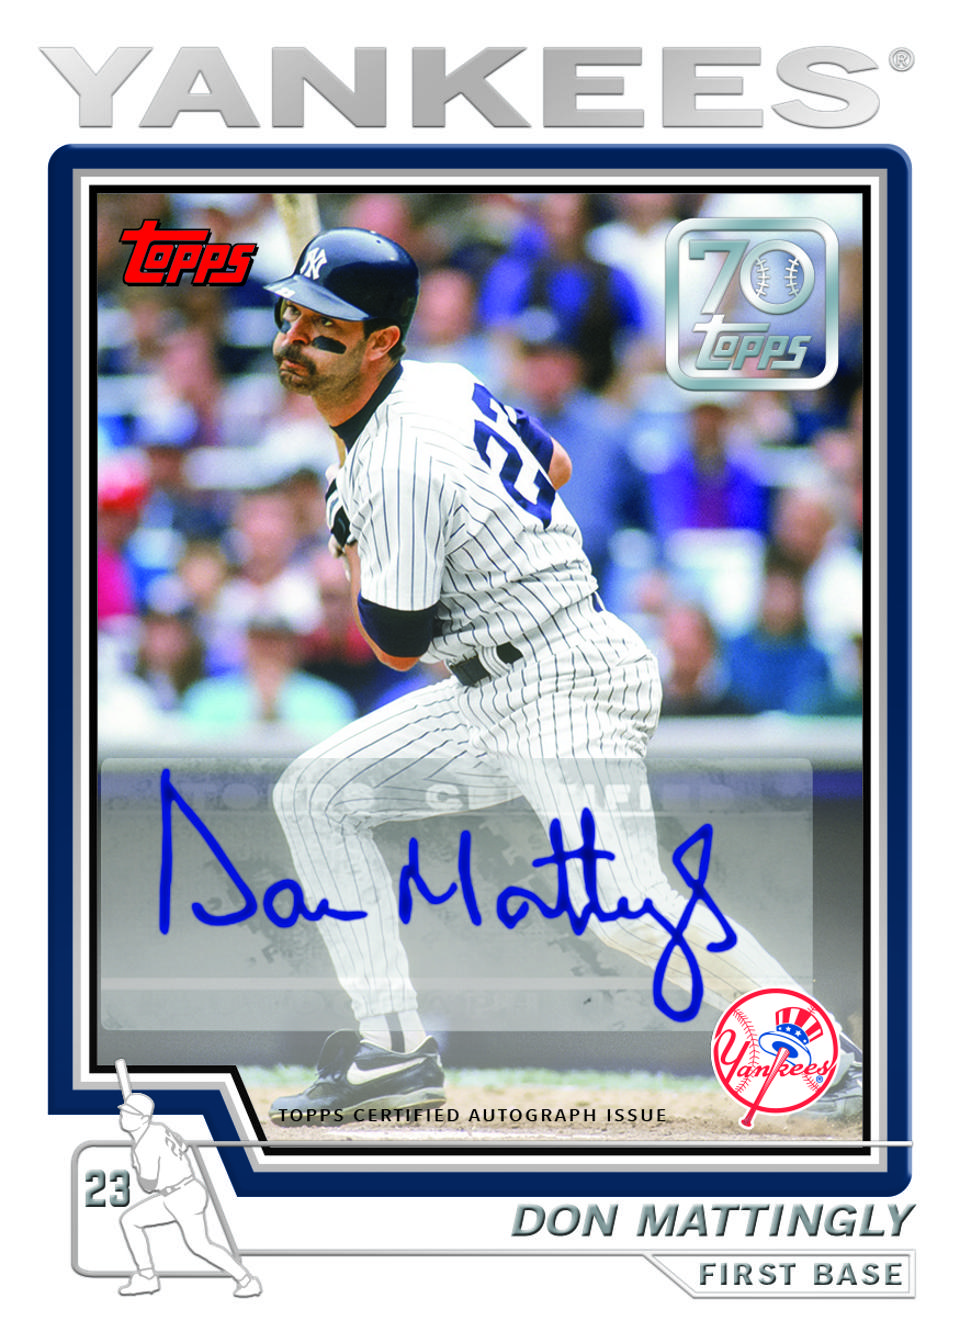 Don Mattingly 2021 Topps Series 1 autographed insert card.